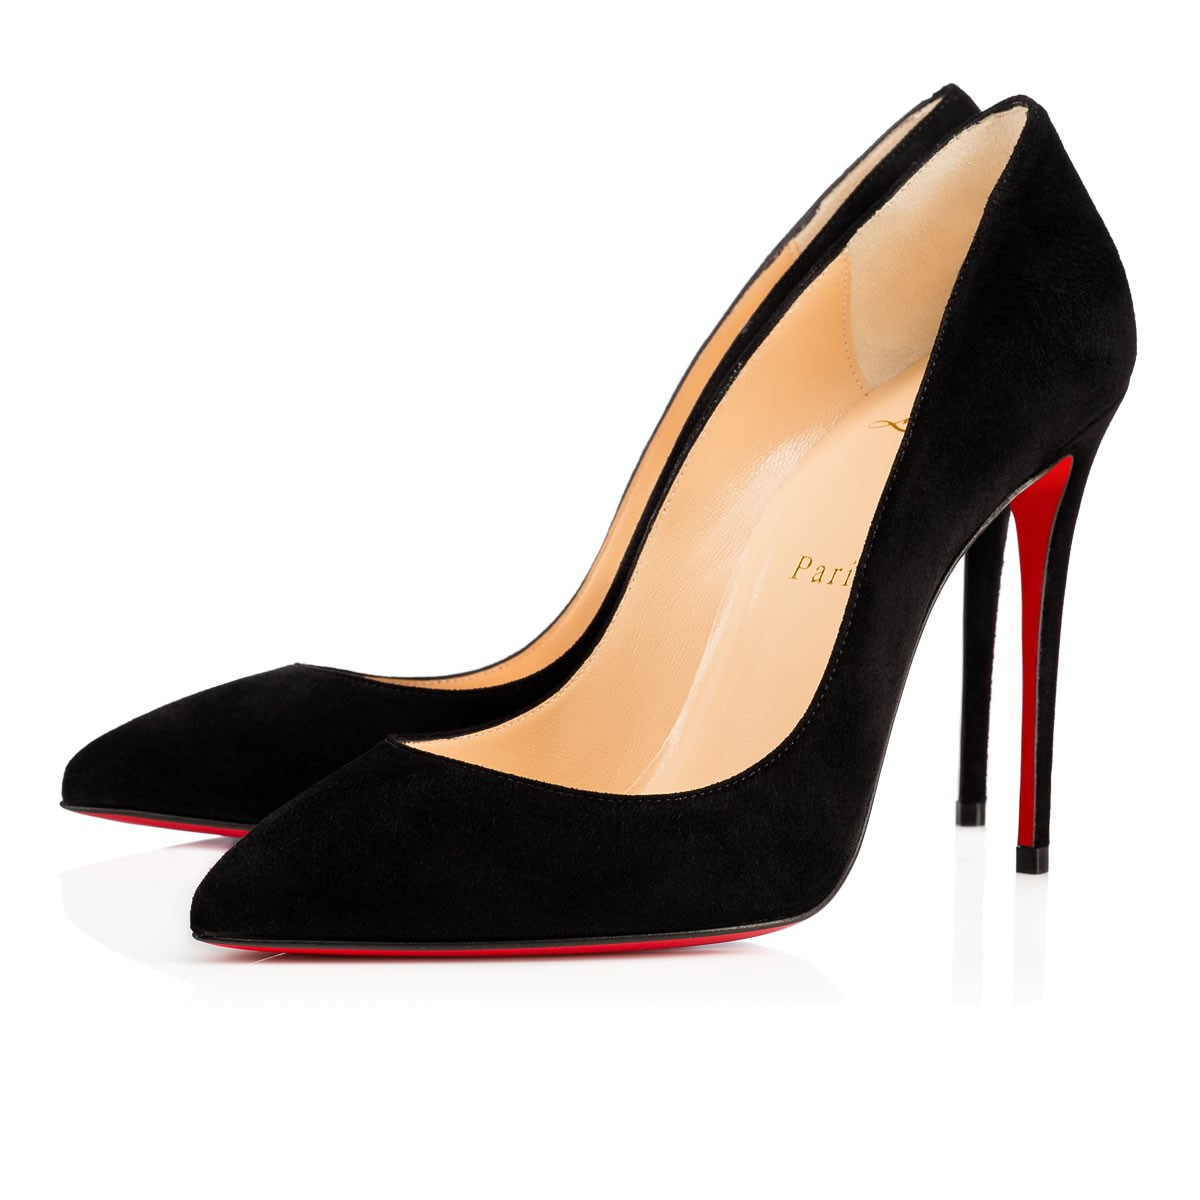 best sneakers 0a161 d4553 Pigalle Follies 100 Black Suede - Women Shoes - Christian Louboutin